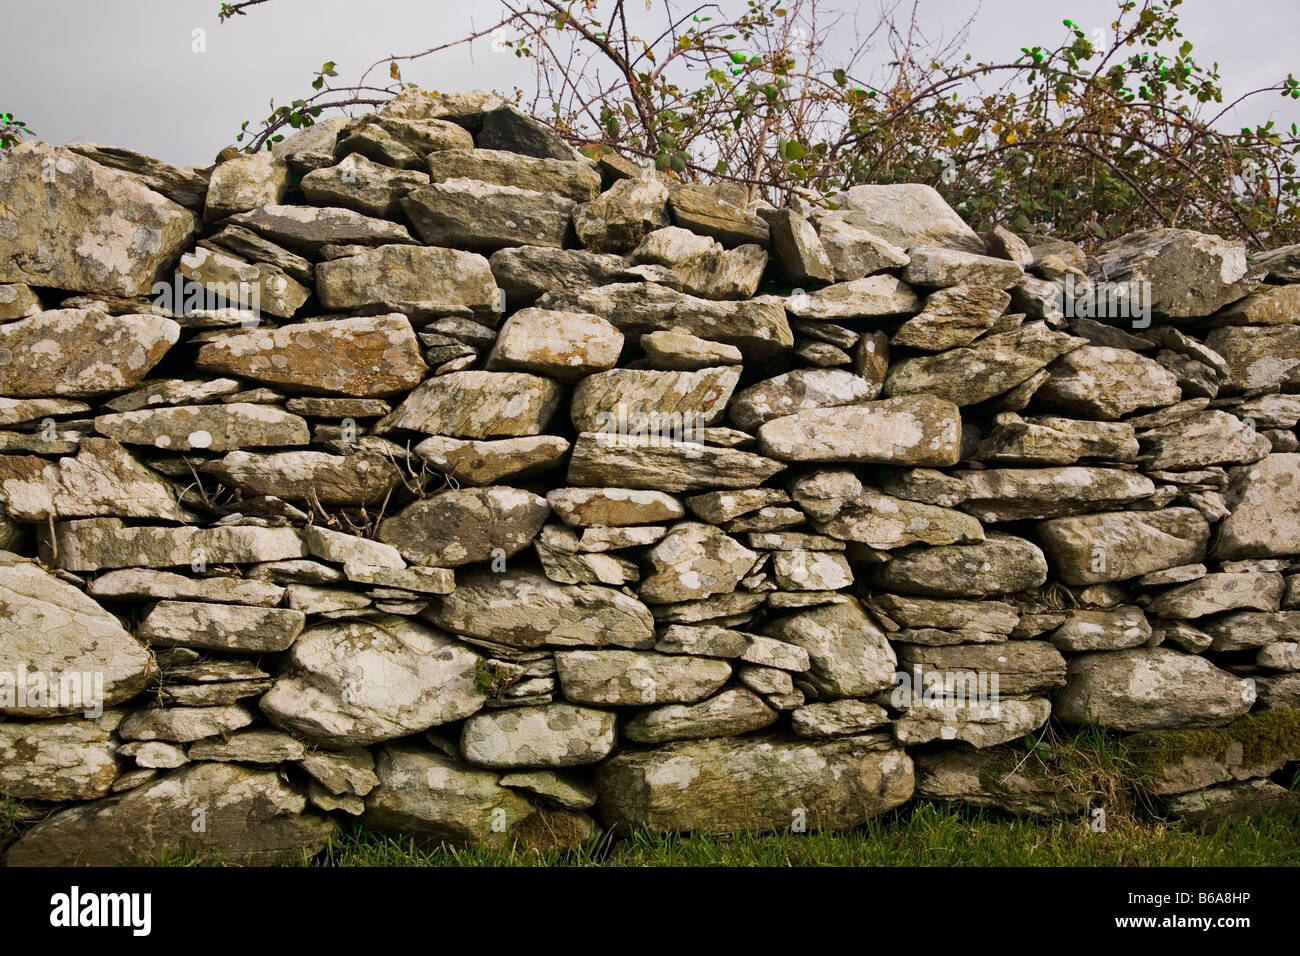 Dry Stone Wall rural Ireland - Stock Image